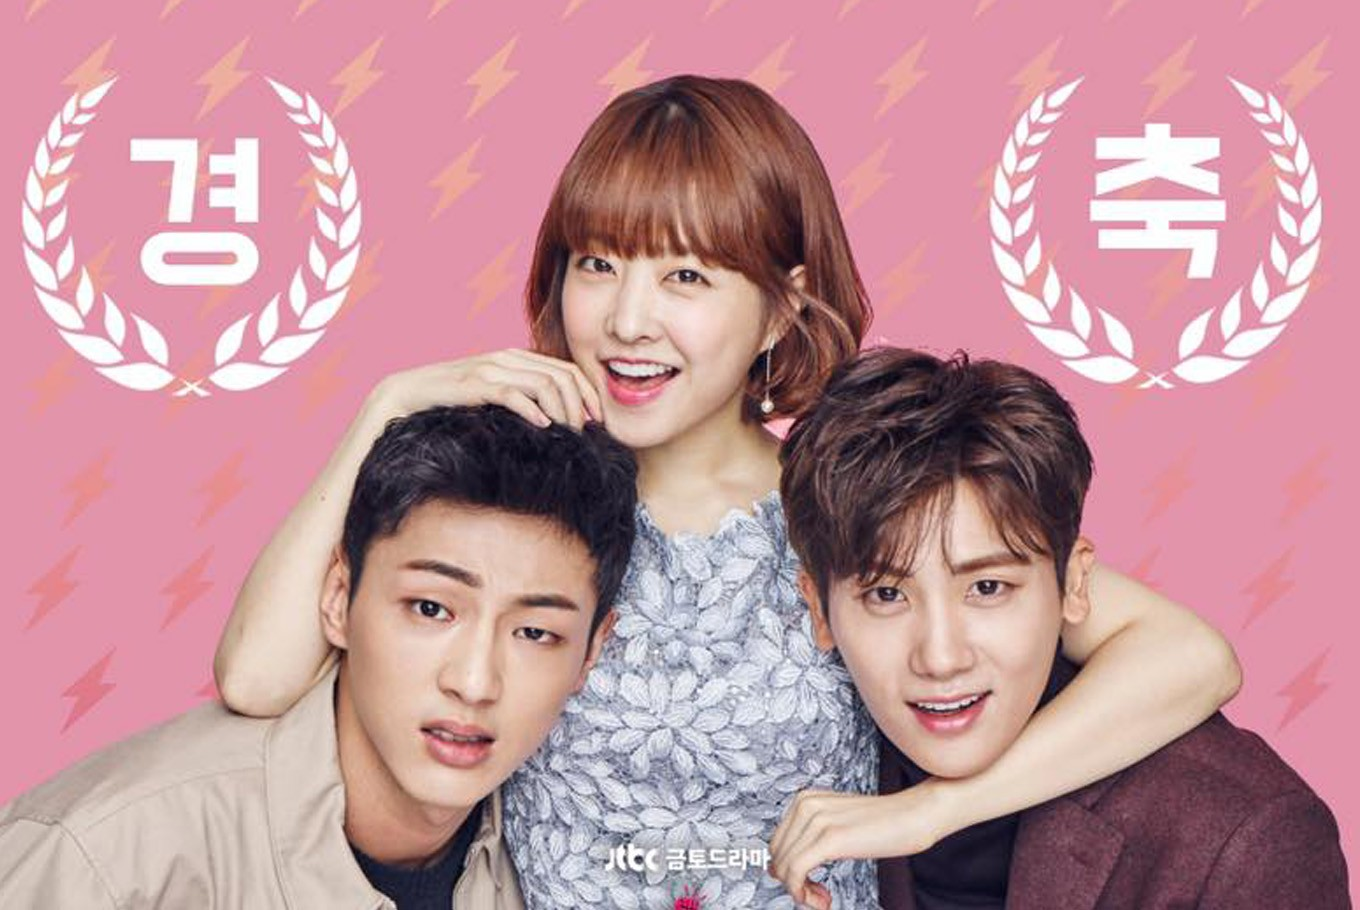 K-Drama Review: A Heroine with Superhuman Strength and Her Daily Struggles  in 'Strong Woman Do Bong-soon' | Channel-K